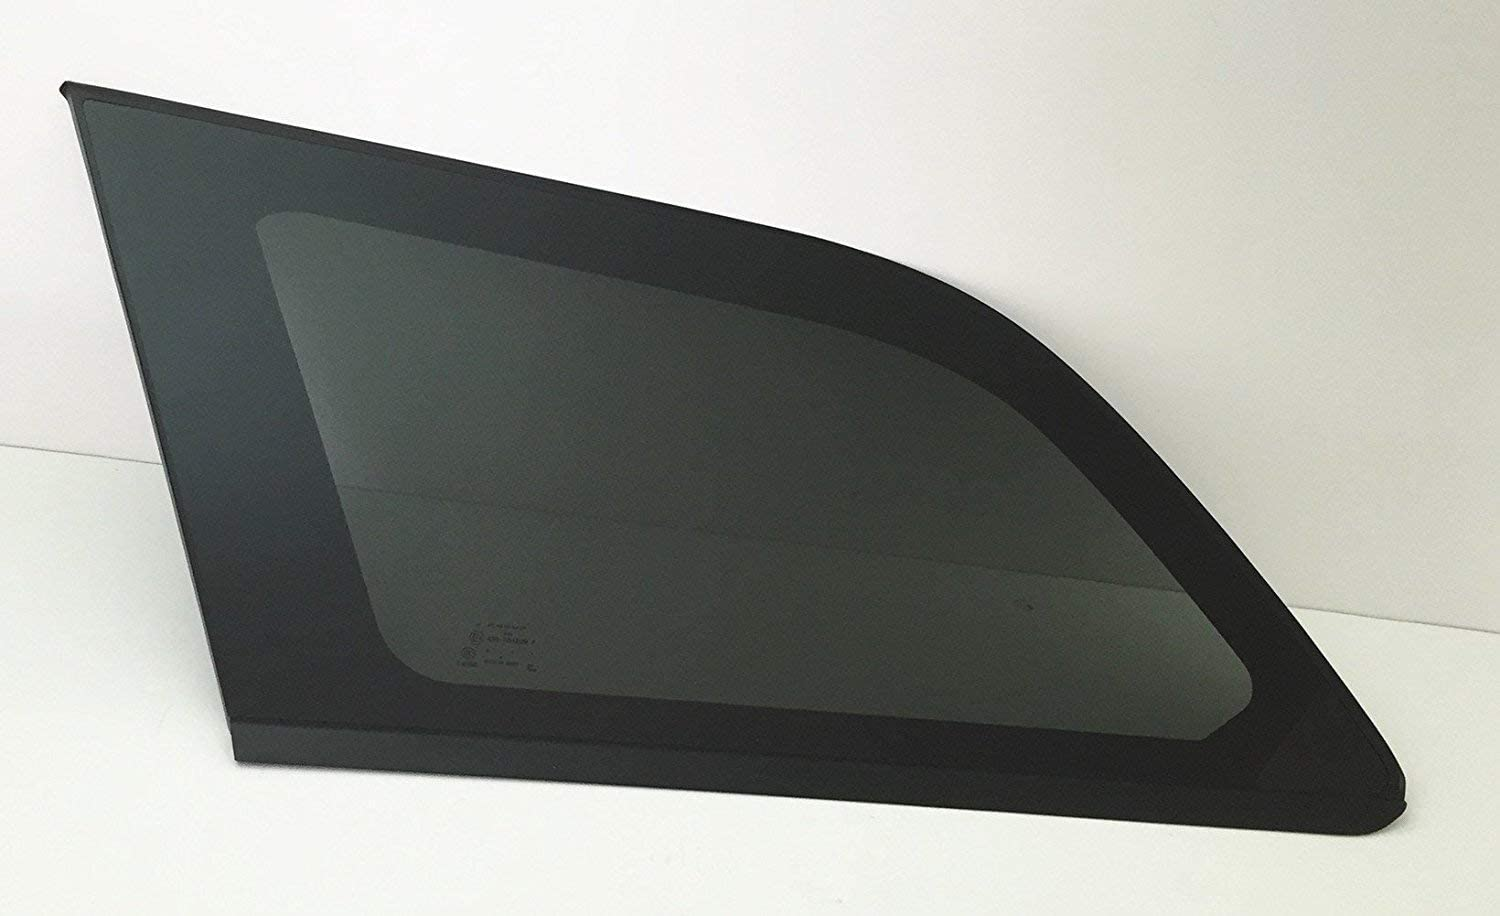 NAGD Heated Back Liftgate Window Privacy Glass Replacement for Dodge Journey 2009-2019